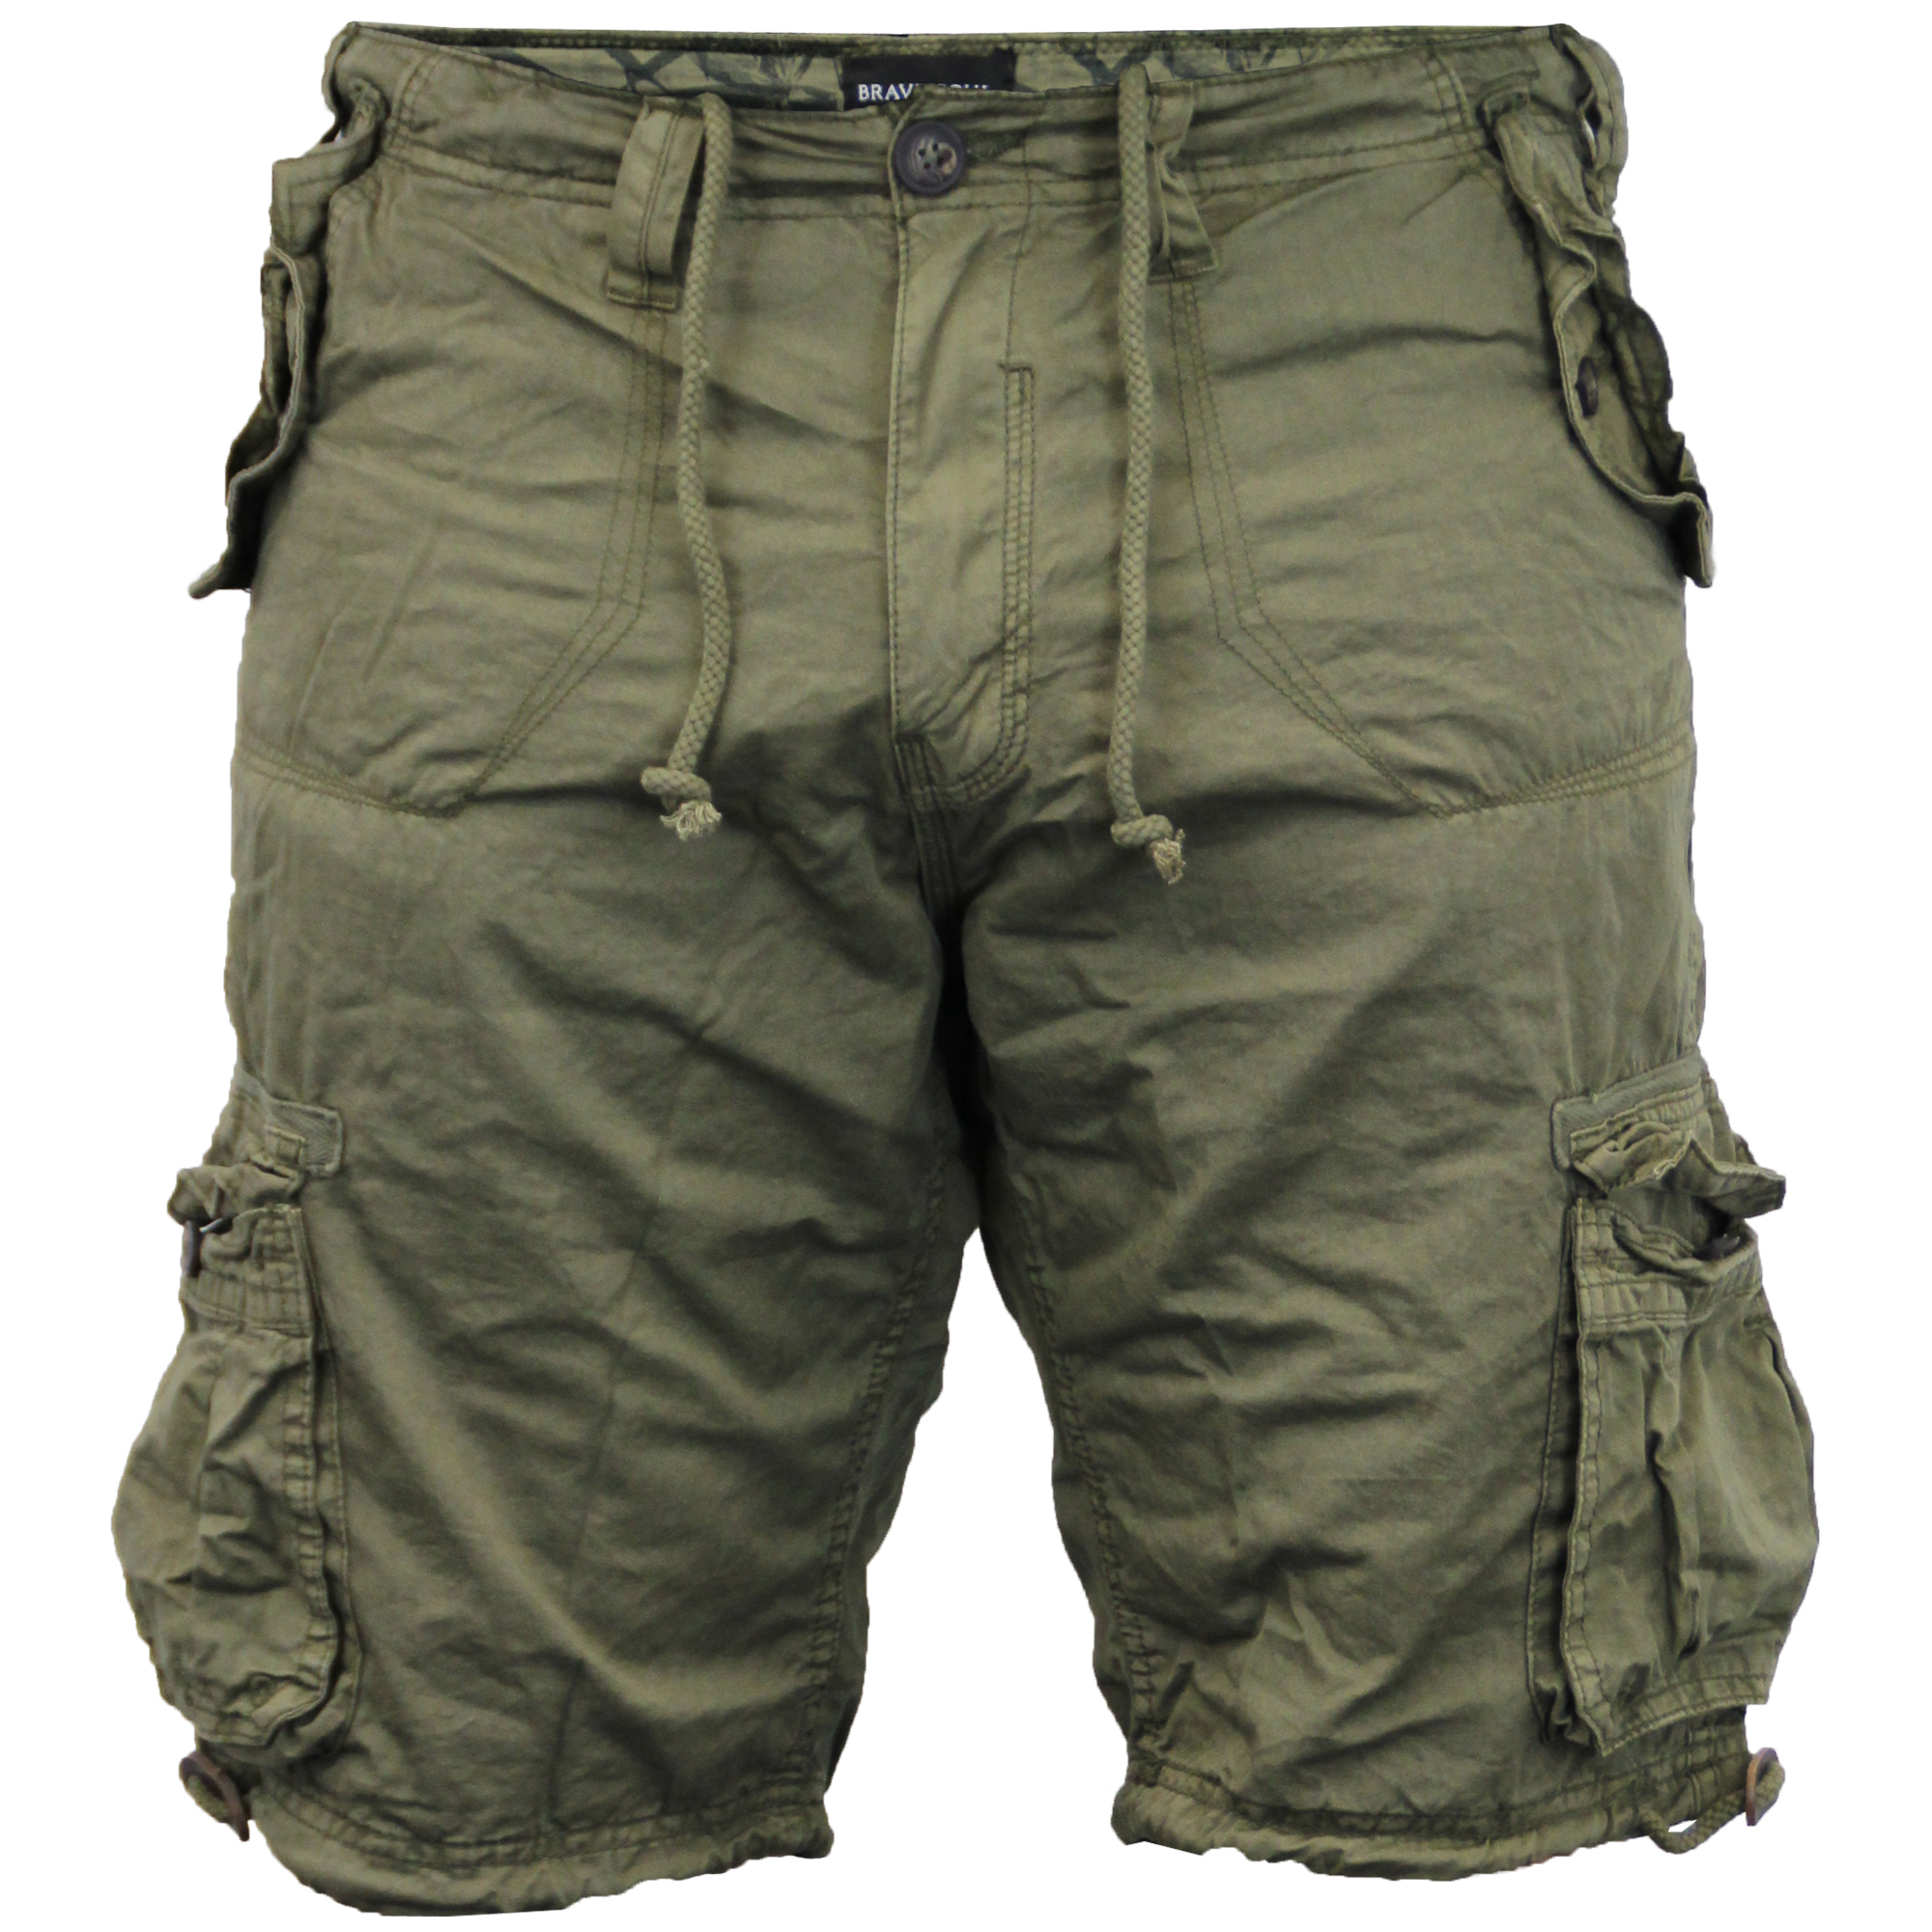 Mens Camo Cargo Shorts Baggy Fit Loose Cotton Shorts Big and Tall. from $ 19 90 Prime. 4 out of 5 stars 4. CRYSULLY. Men's Summer Cotton Casual Military Multi Pocket Camo Cargo Shorts Camouflage Dungarees(No Belt) from $ 24 99 Prime. out of 5 stars Osmyzcp. Mens Cotton Relaxed Fit Camouflage Camo Cargo Shorts.